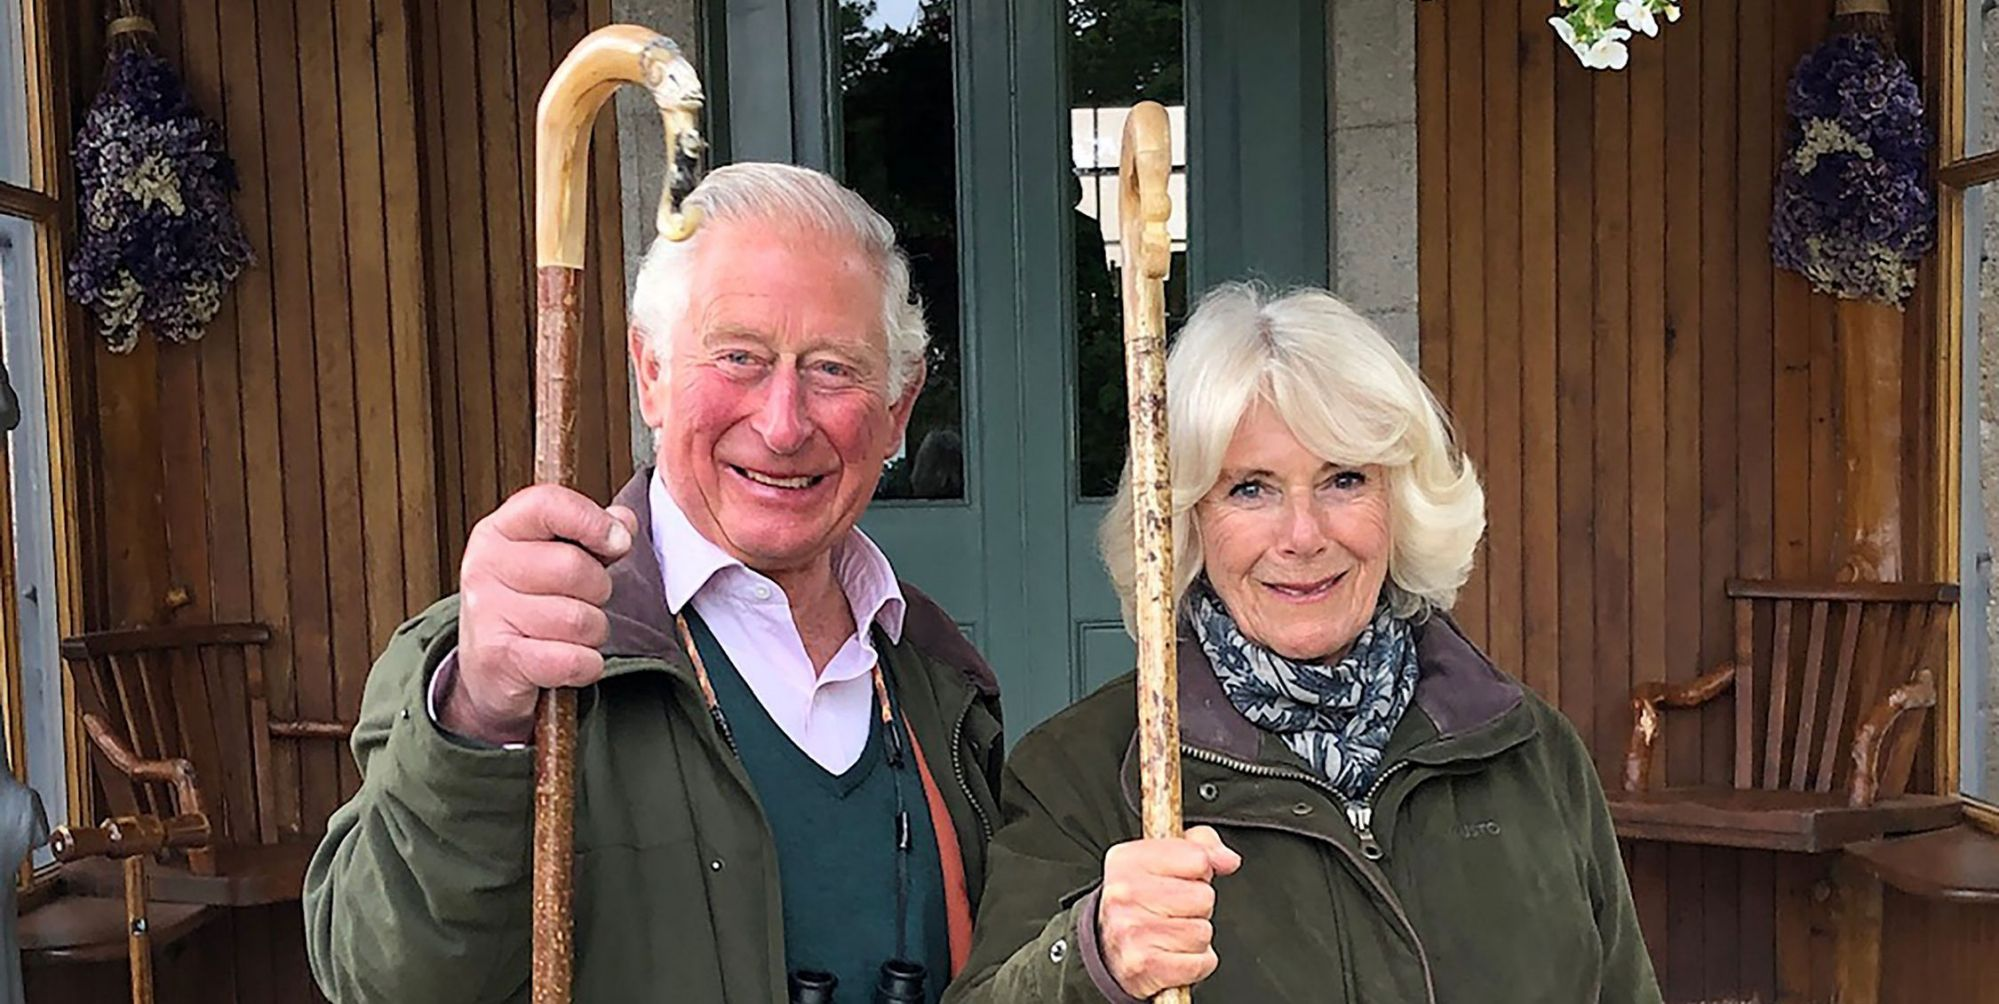 Prince Charles and Camilla release a new photo as the royals spend Christmas separately